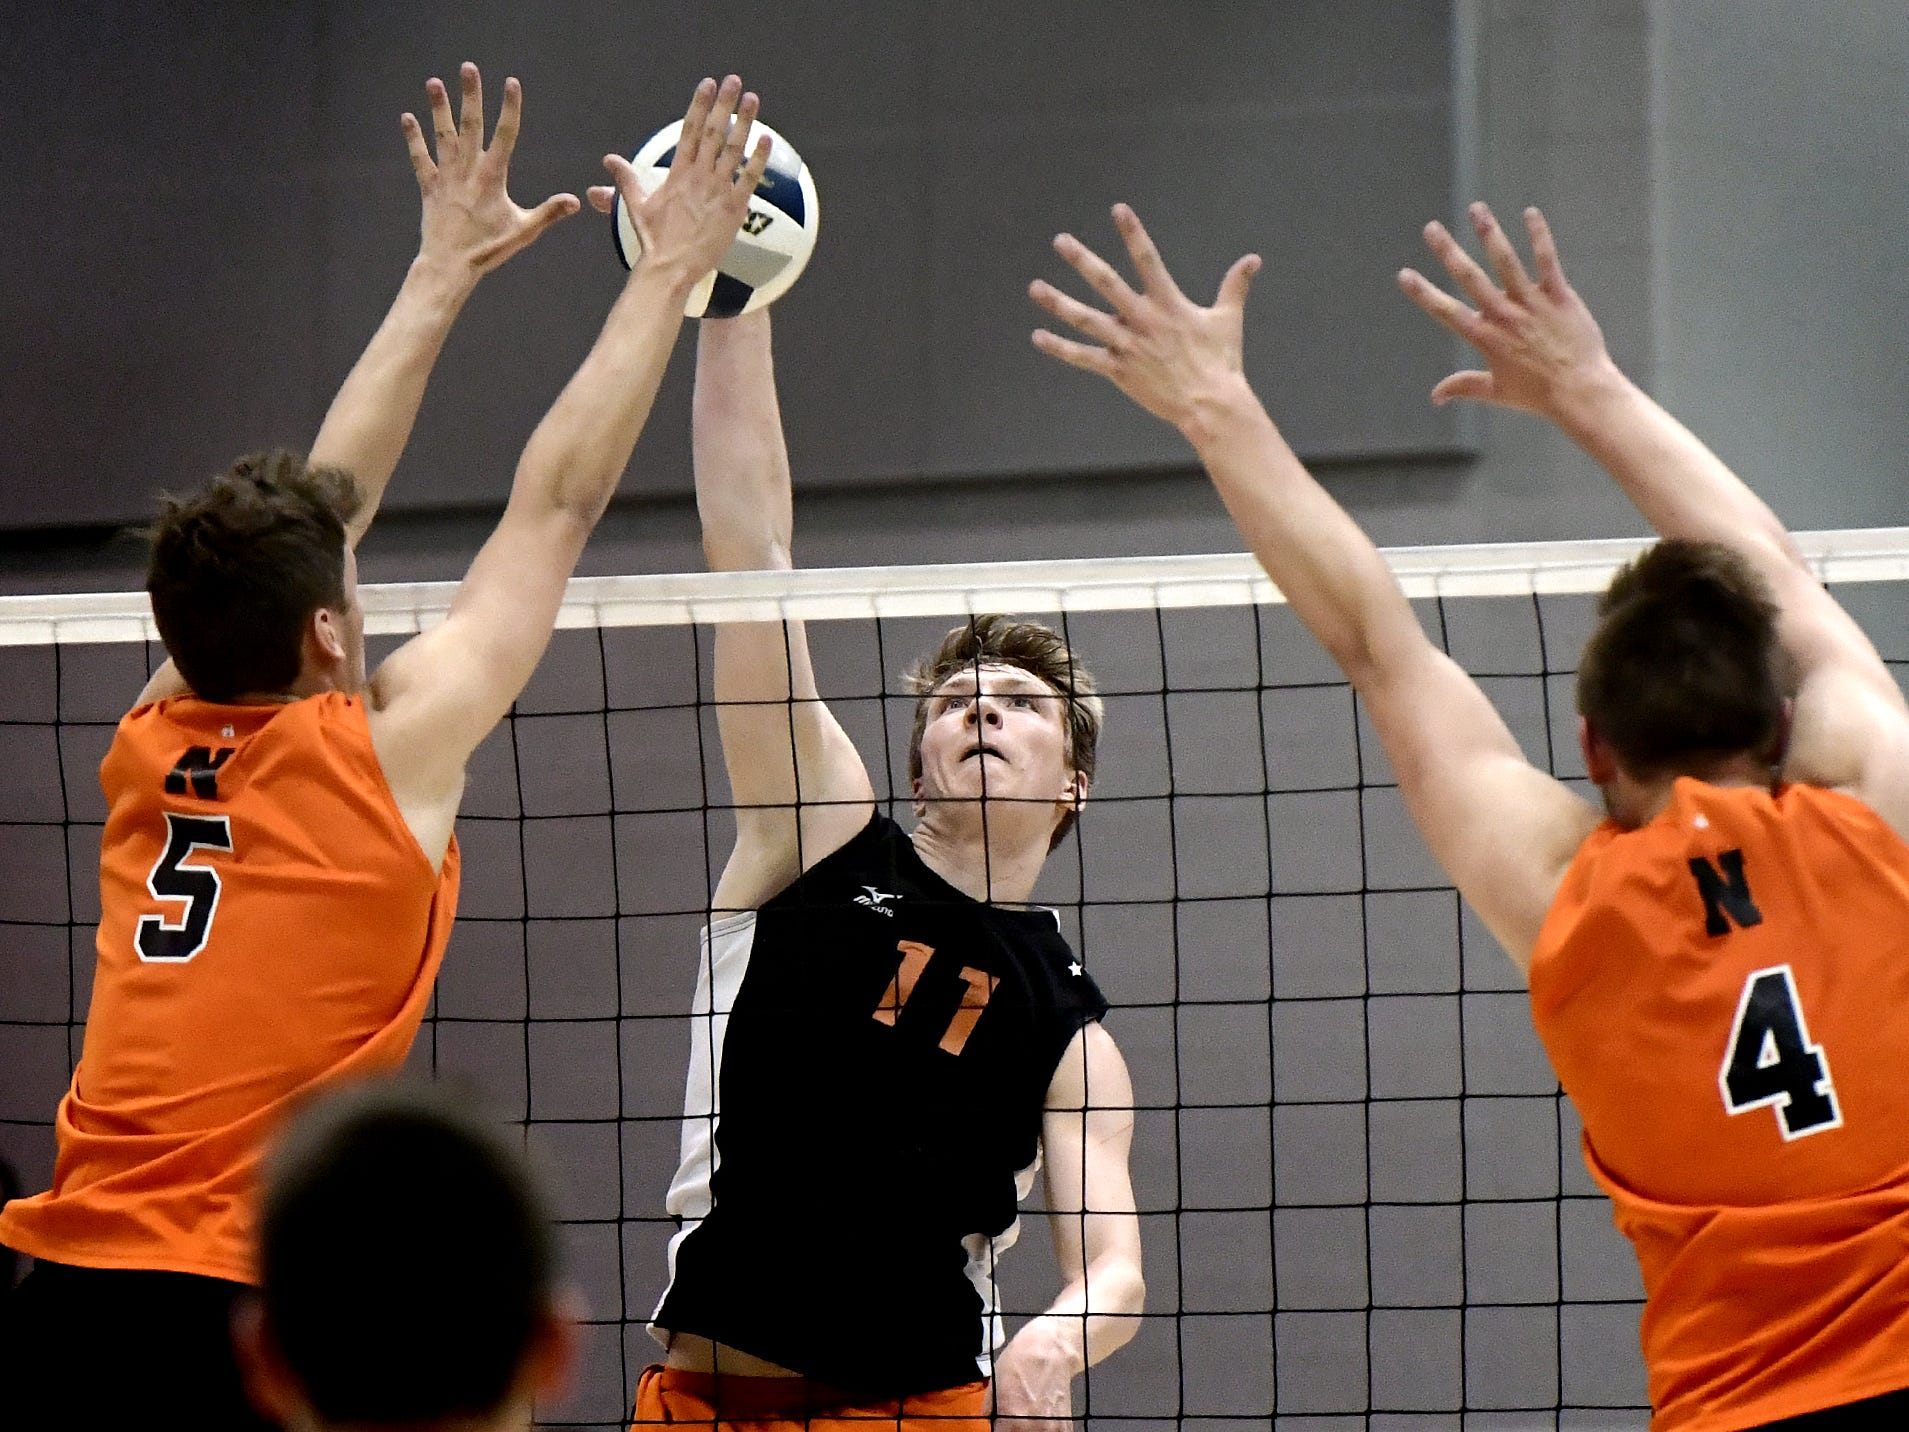 Central York's Braden Richard tips a shot over Northeastern's Nate Wilson, left, and Zech Sanderson in the York-Adams boys' volleyball championship match at Dallastown Tuesday, May 14, 2019. Bill Kalina photo